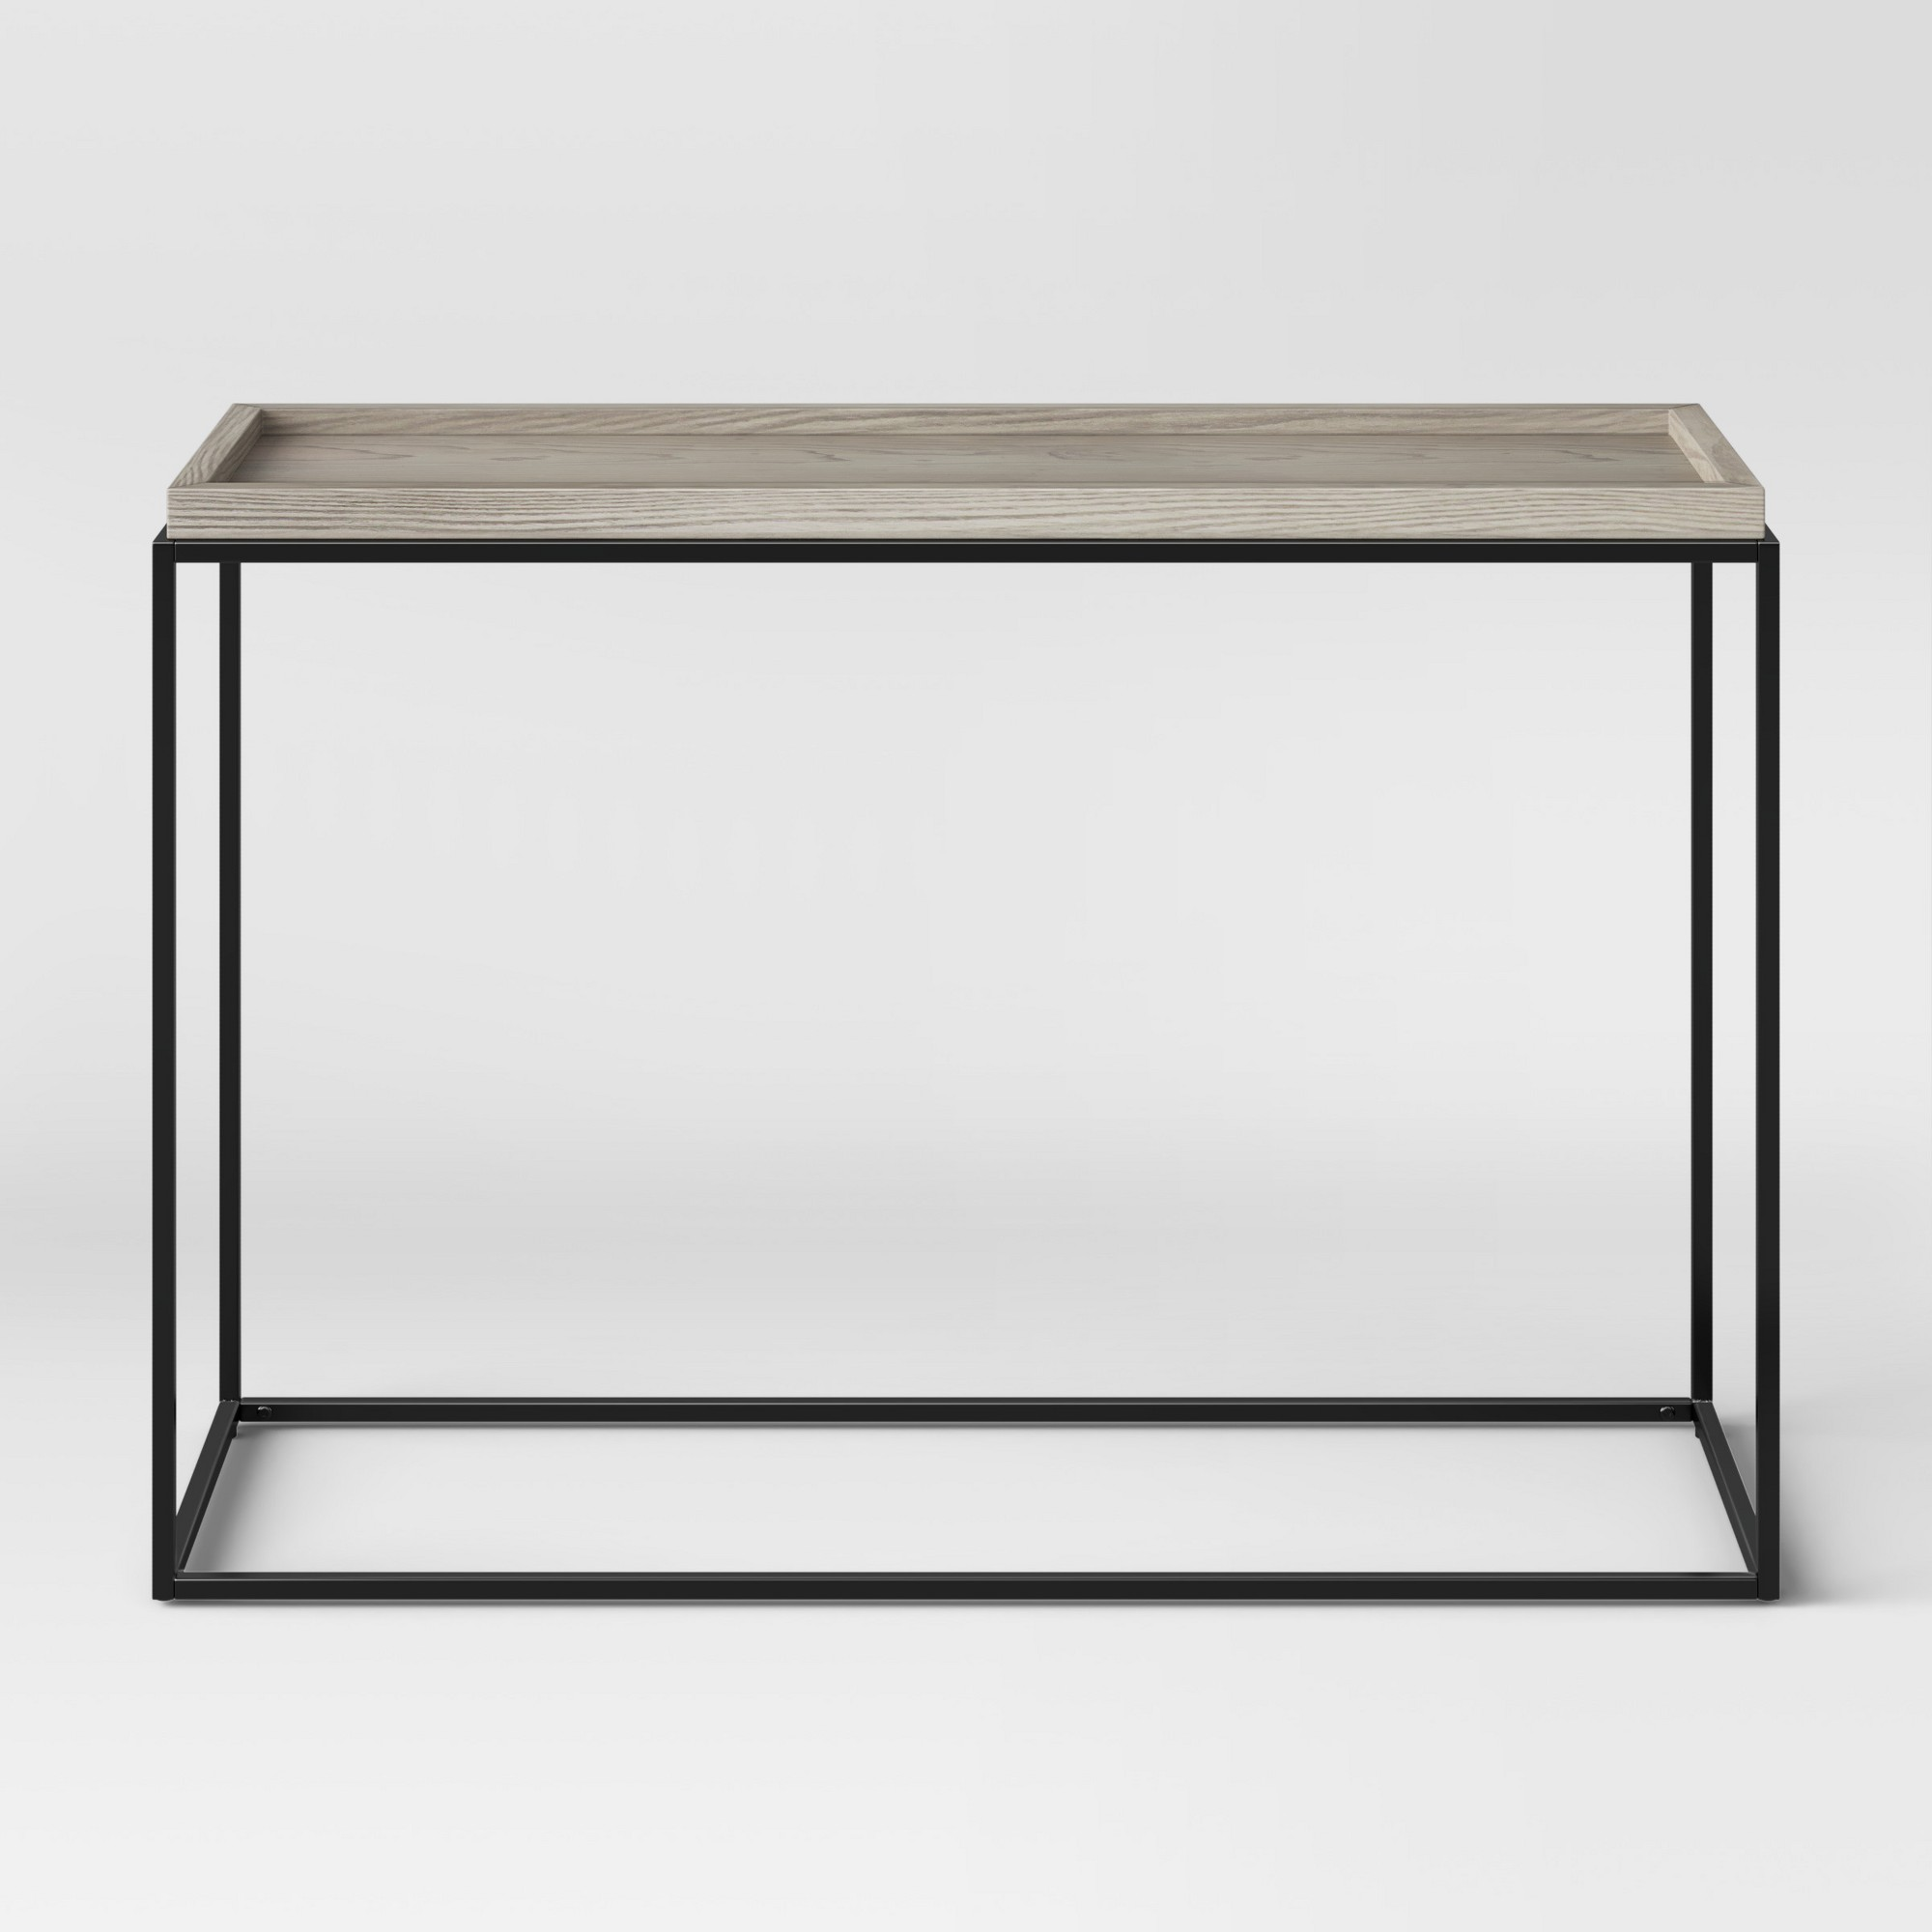 Intarsia natural console table